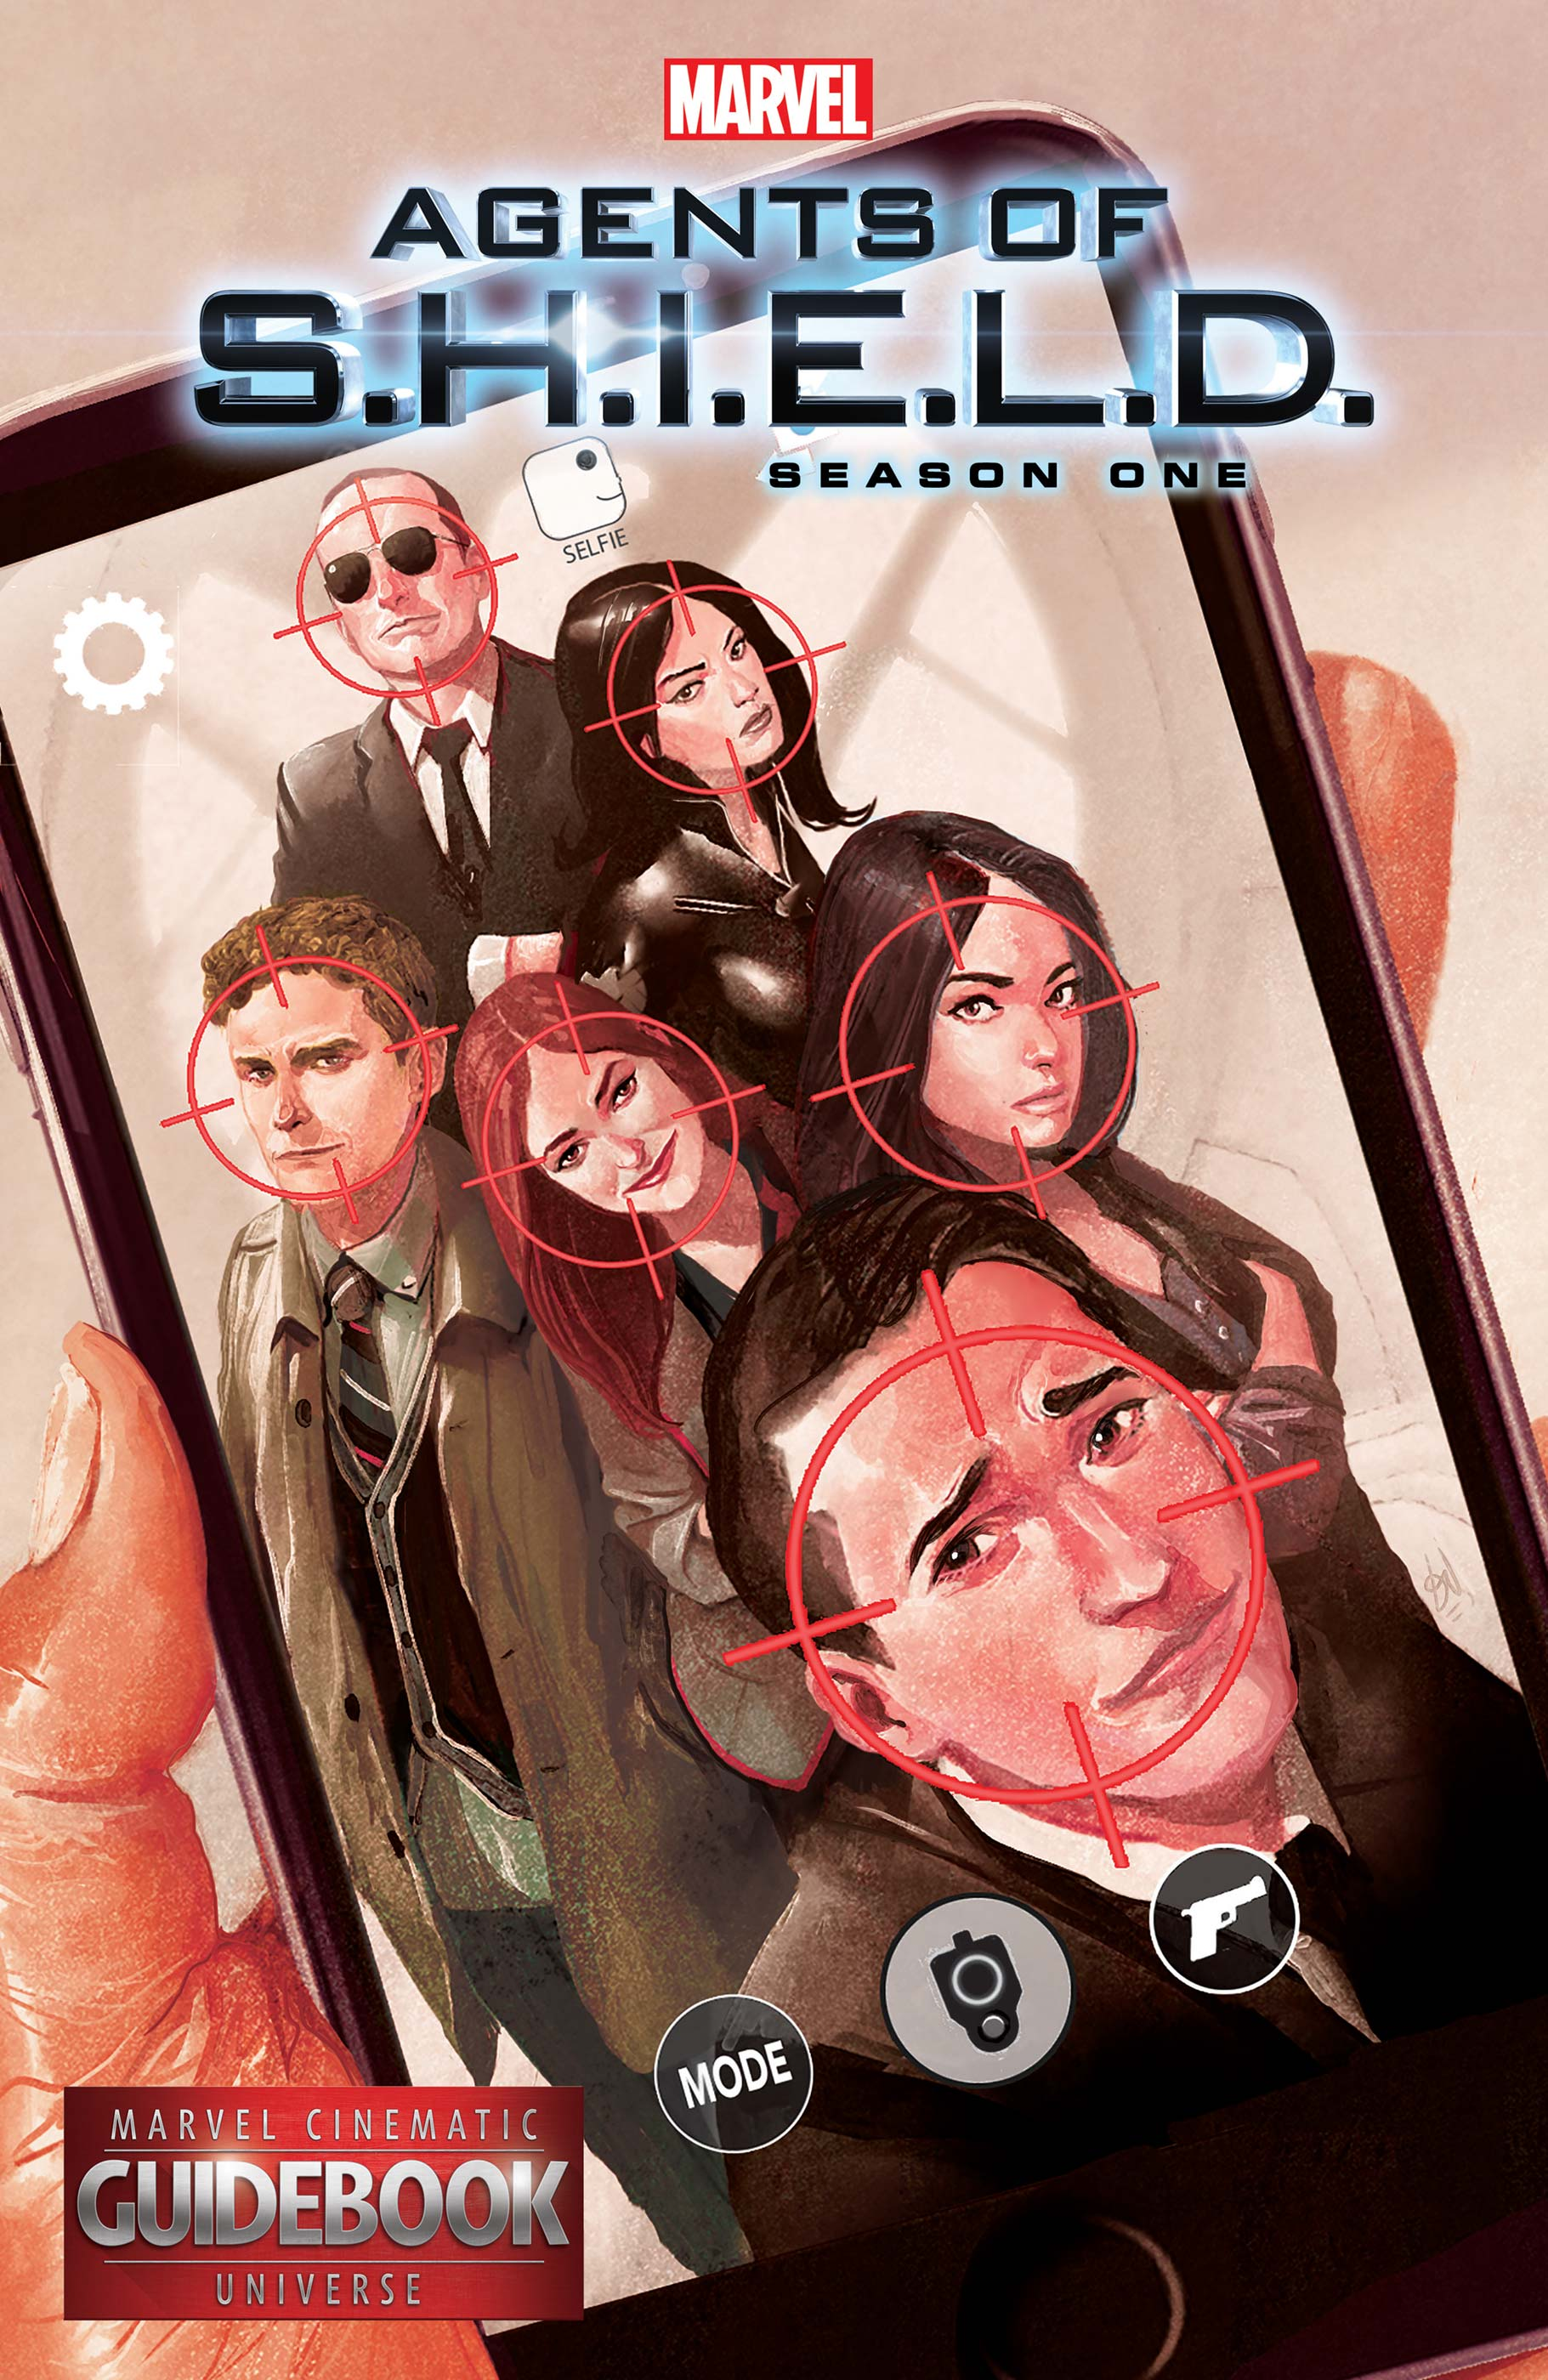 Guidebook to The Marvel Cinematic Universe - Marvel's Agents of S.H.I.E.L.D. Season One (2016) #1